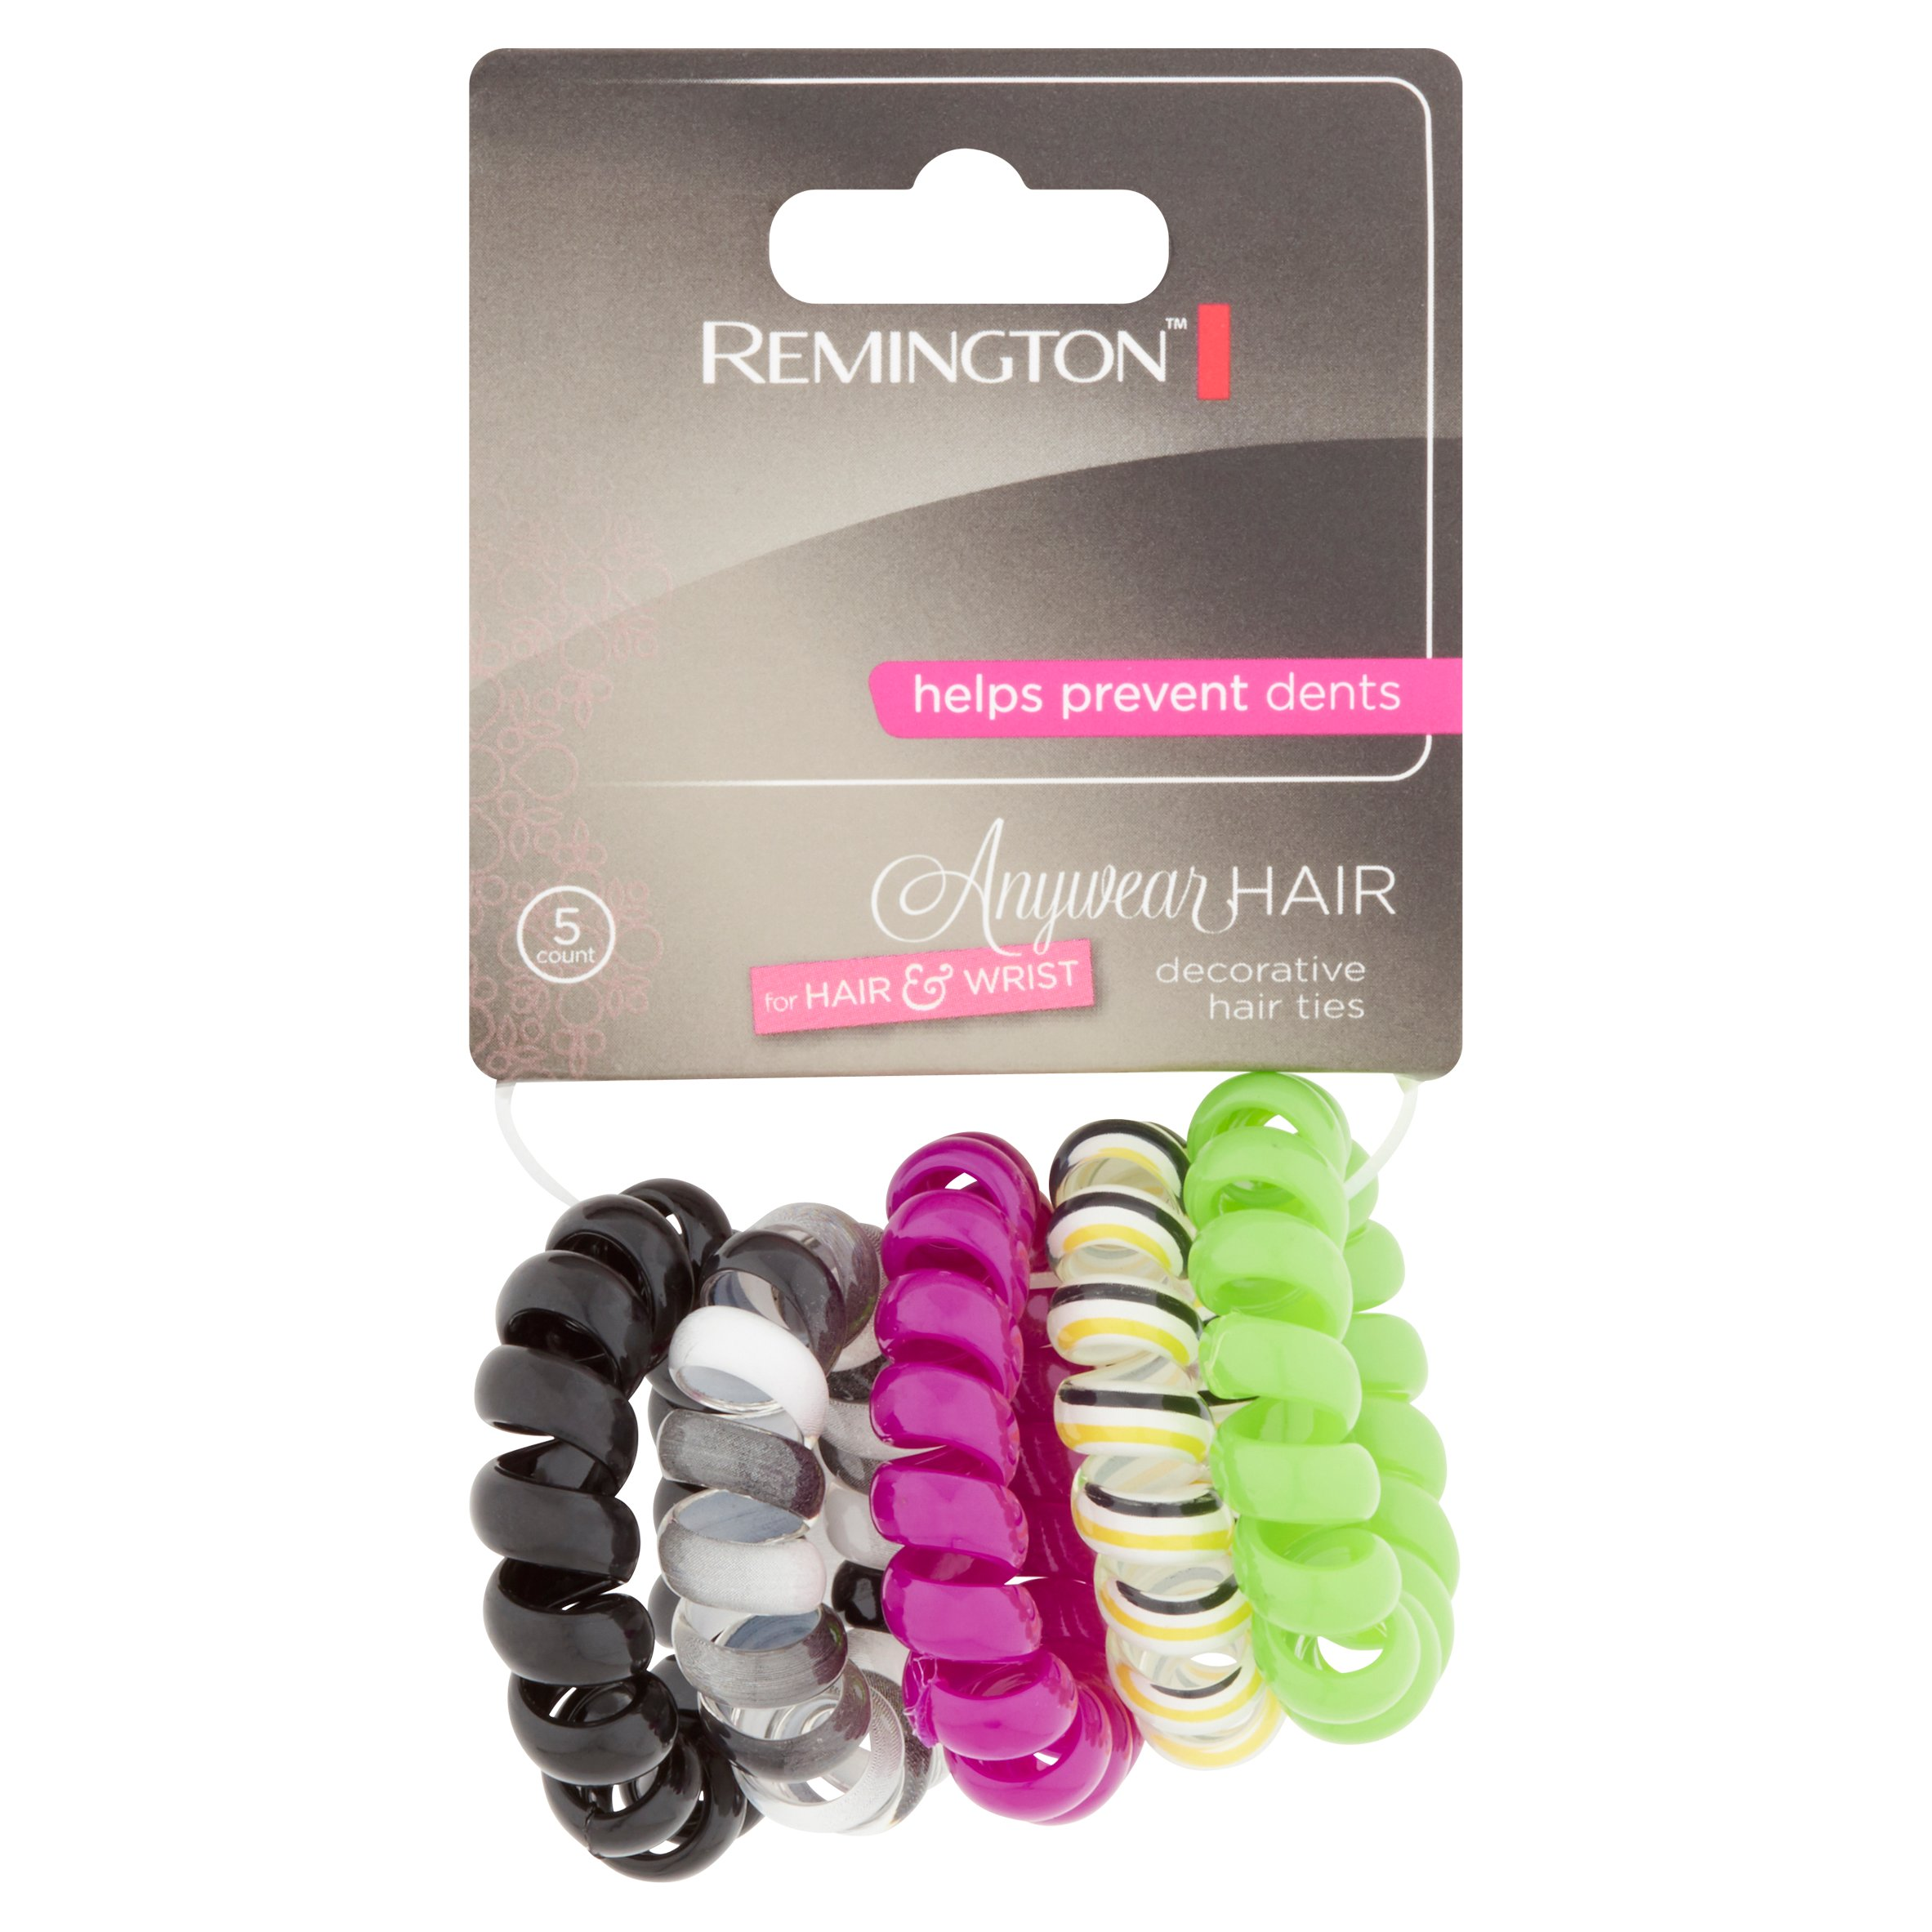 Remington Anywear Hair Decorative Hair Ties, 5 count